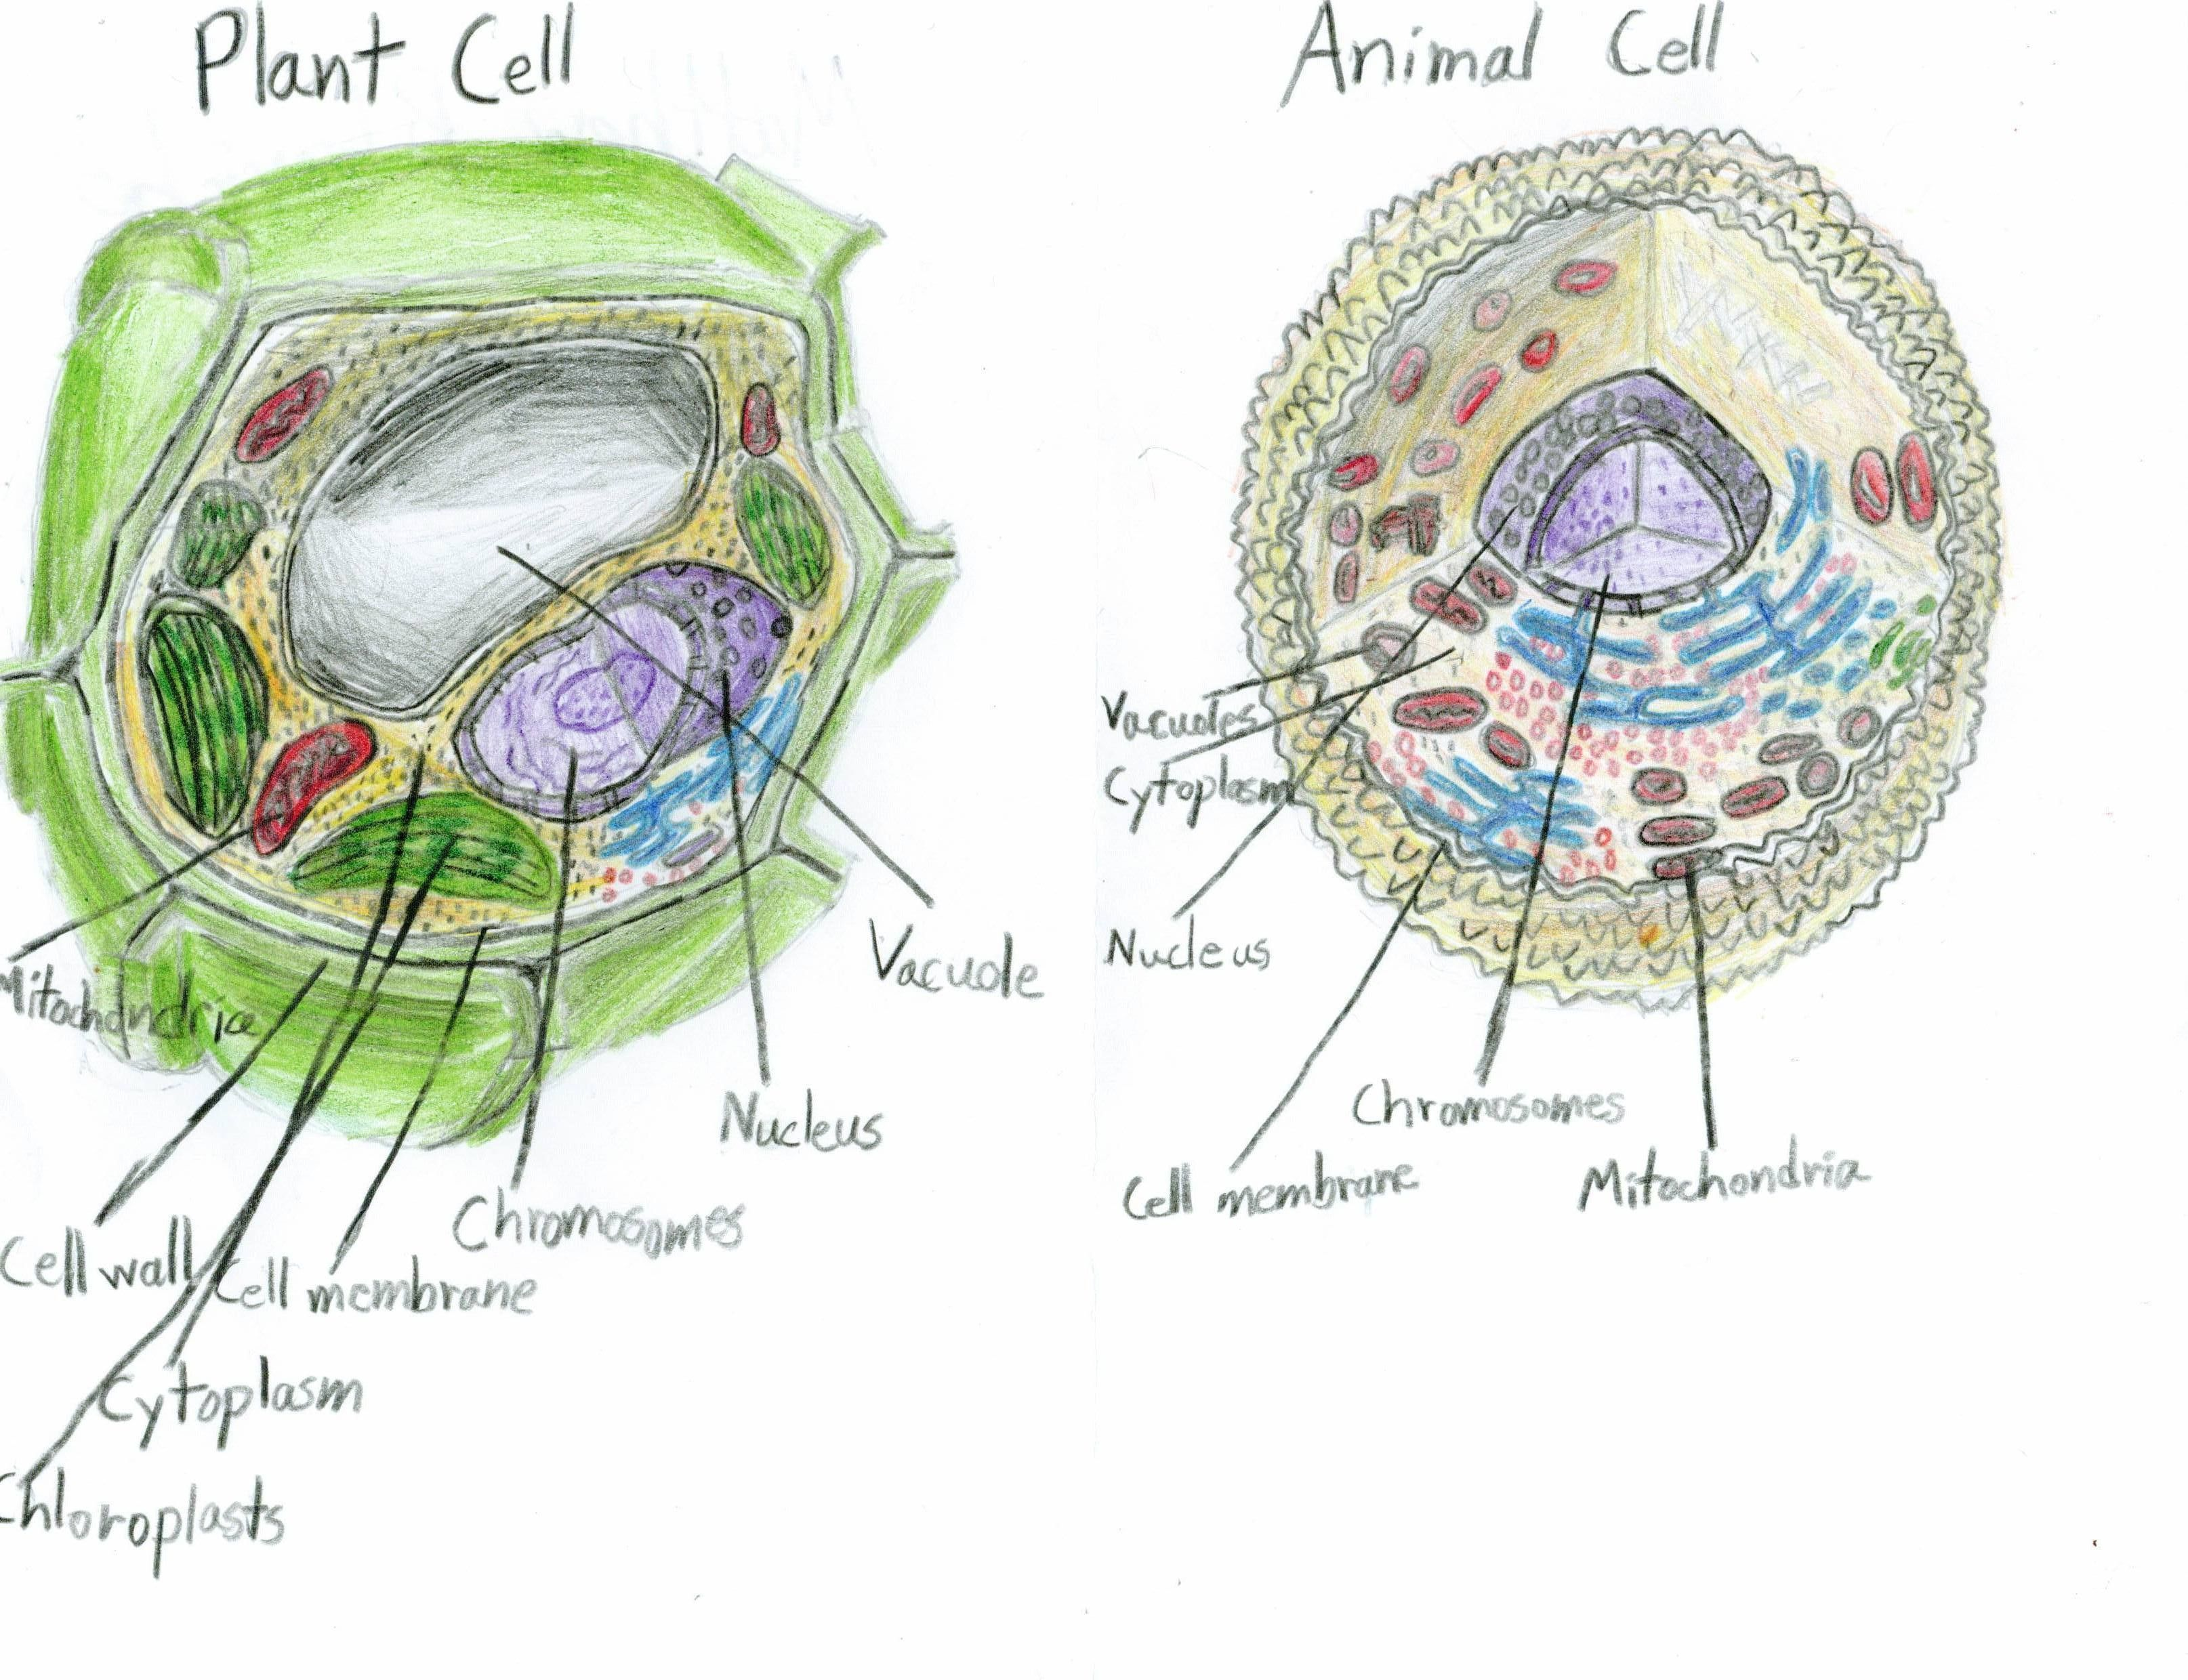 Animal Cell Diagram For 7th Graders Bigking Keywords And Pictures 3d Plant Grade Labeled